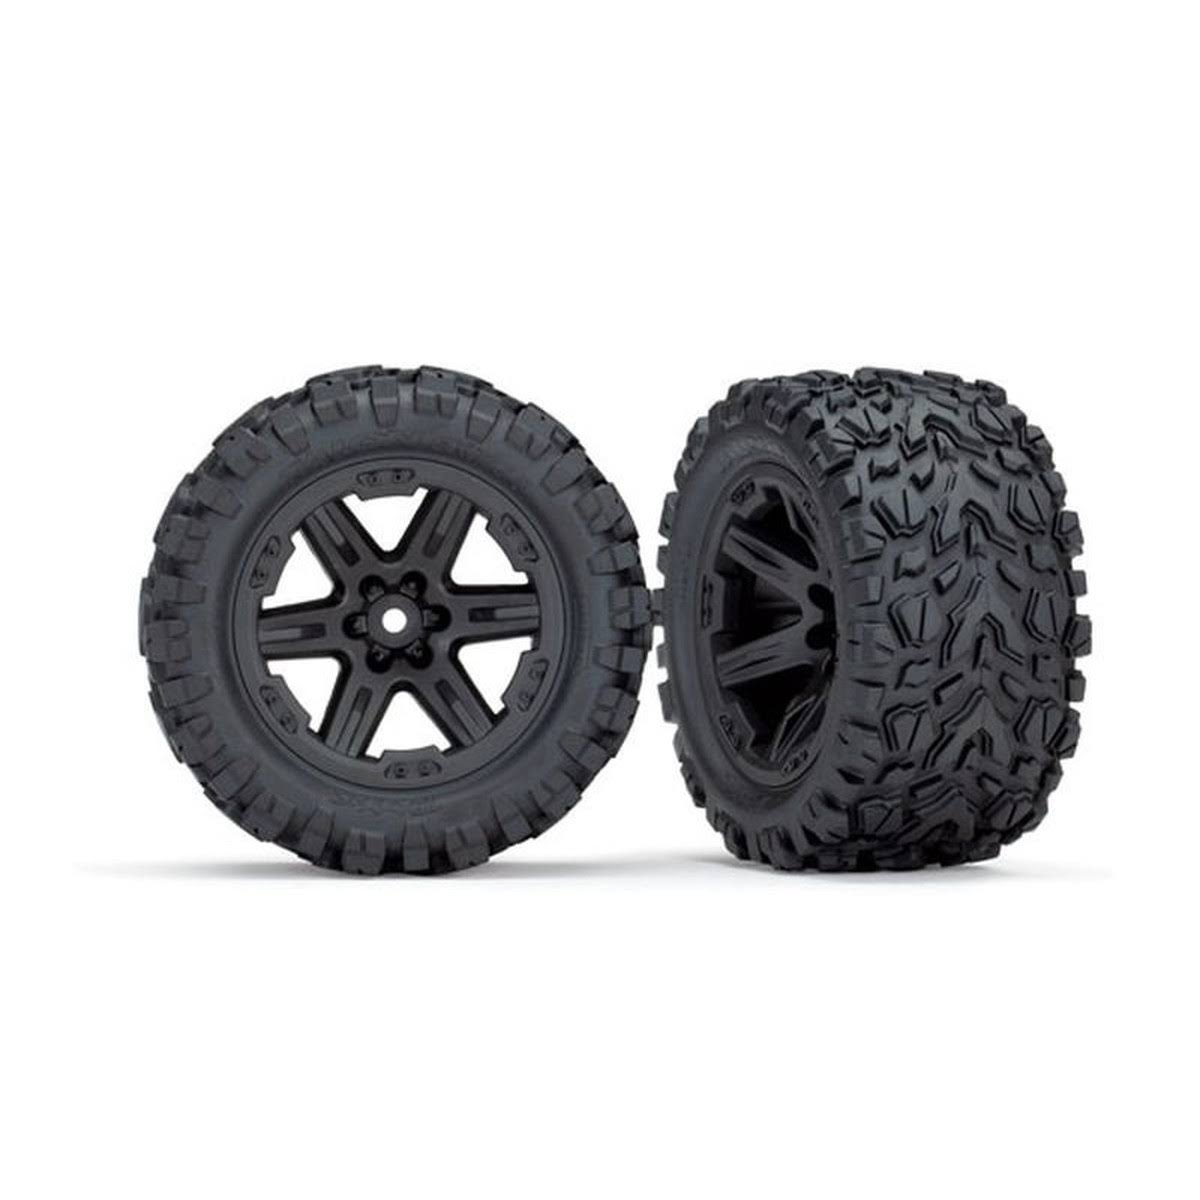 "Traxxas TRA6774 Rustler 4x4 Rear Mounted 2.8"" Tires & Wheels"